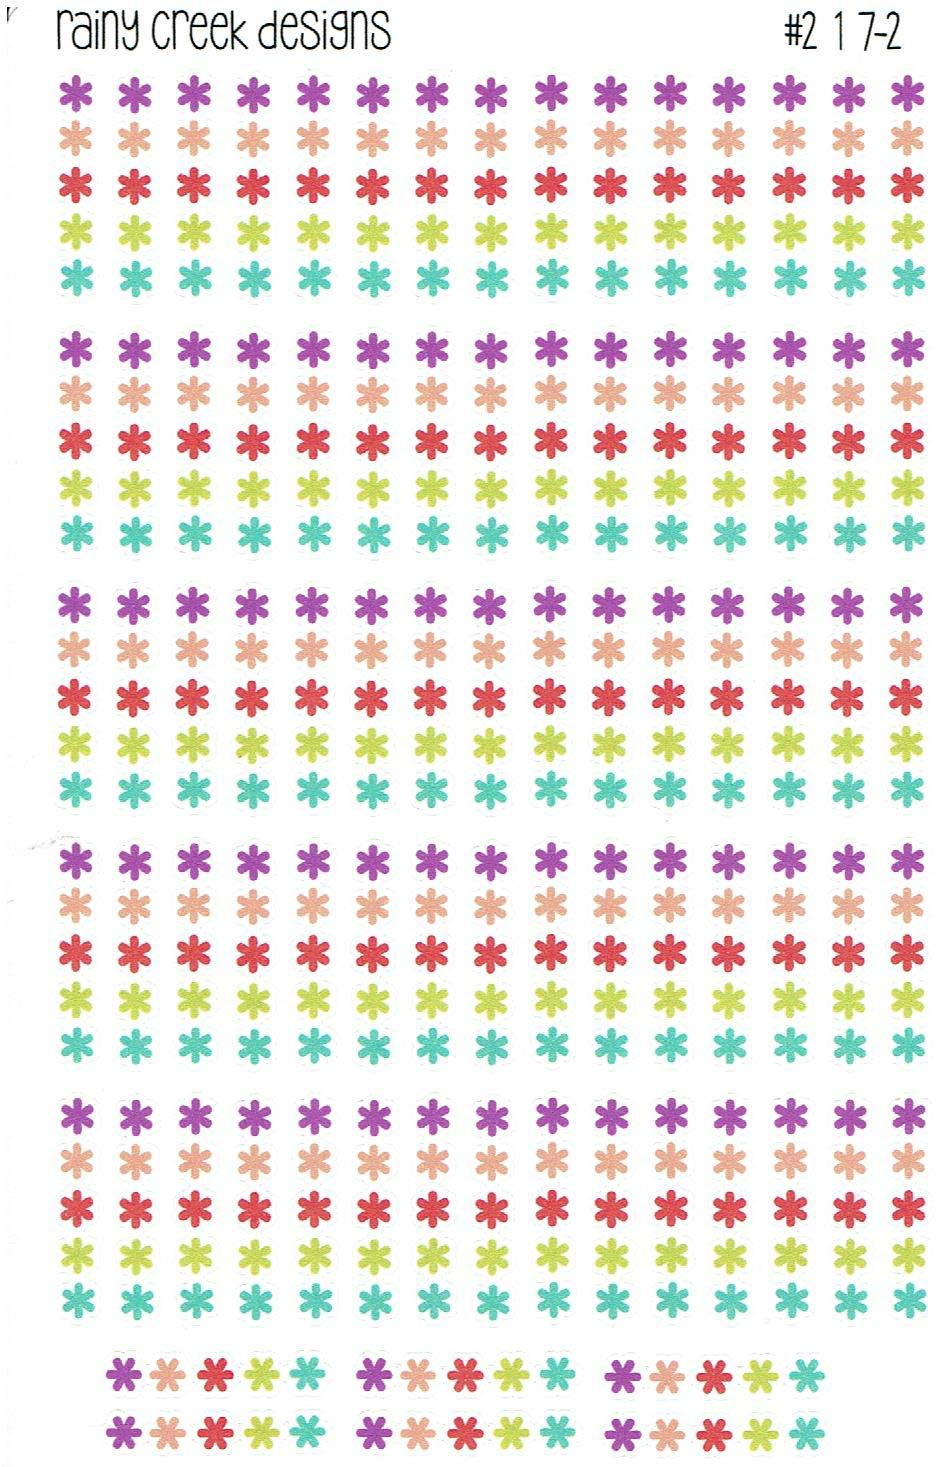 Plum Paper ME 7 x 9 Happy Planner and other planners #217 Plum Paper ME A5 Asterisk Checklist Planner Stickers for Erin Condren